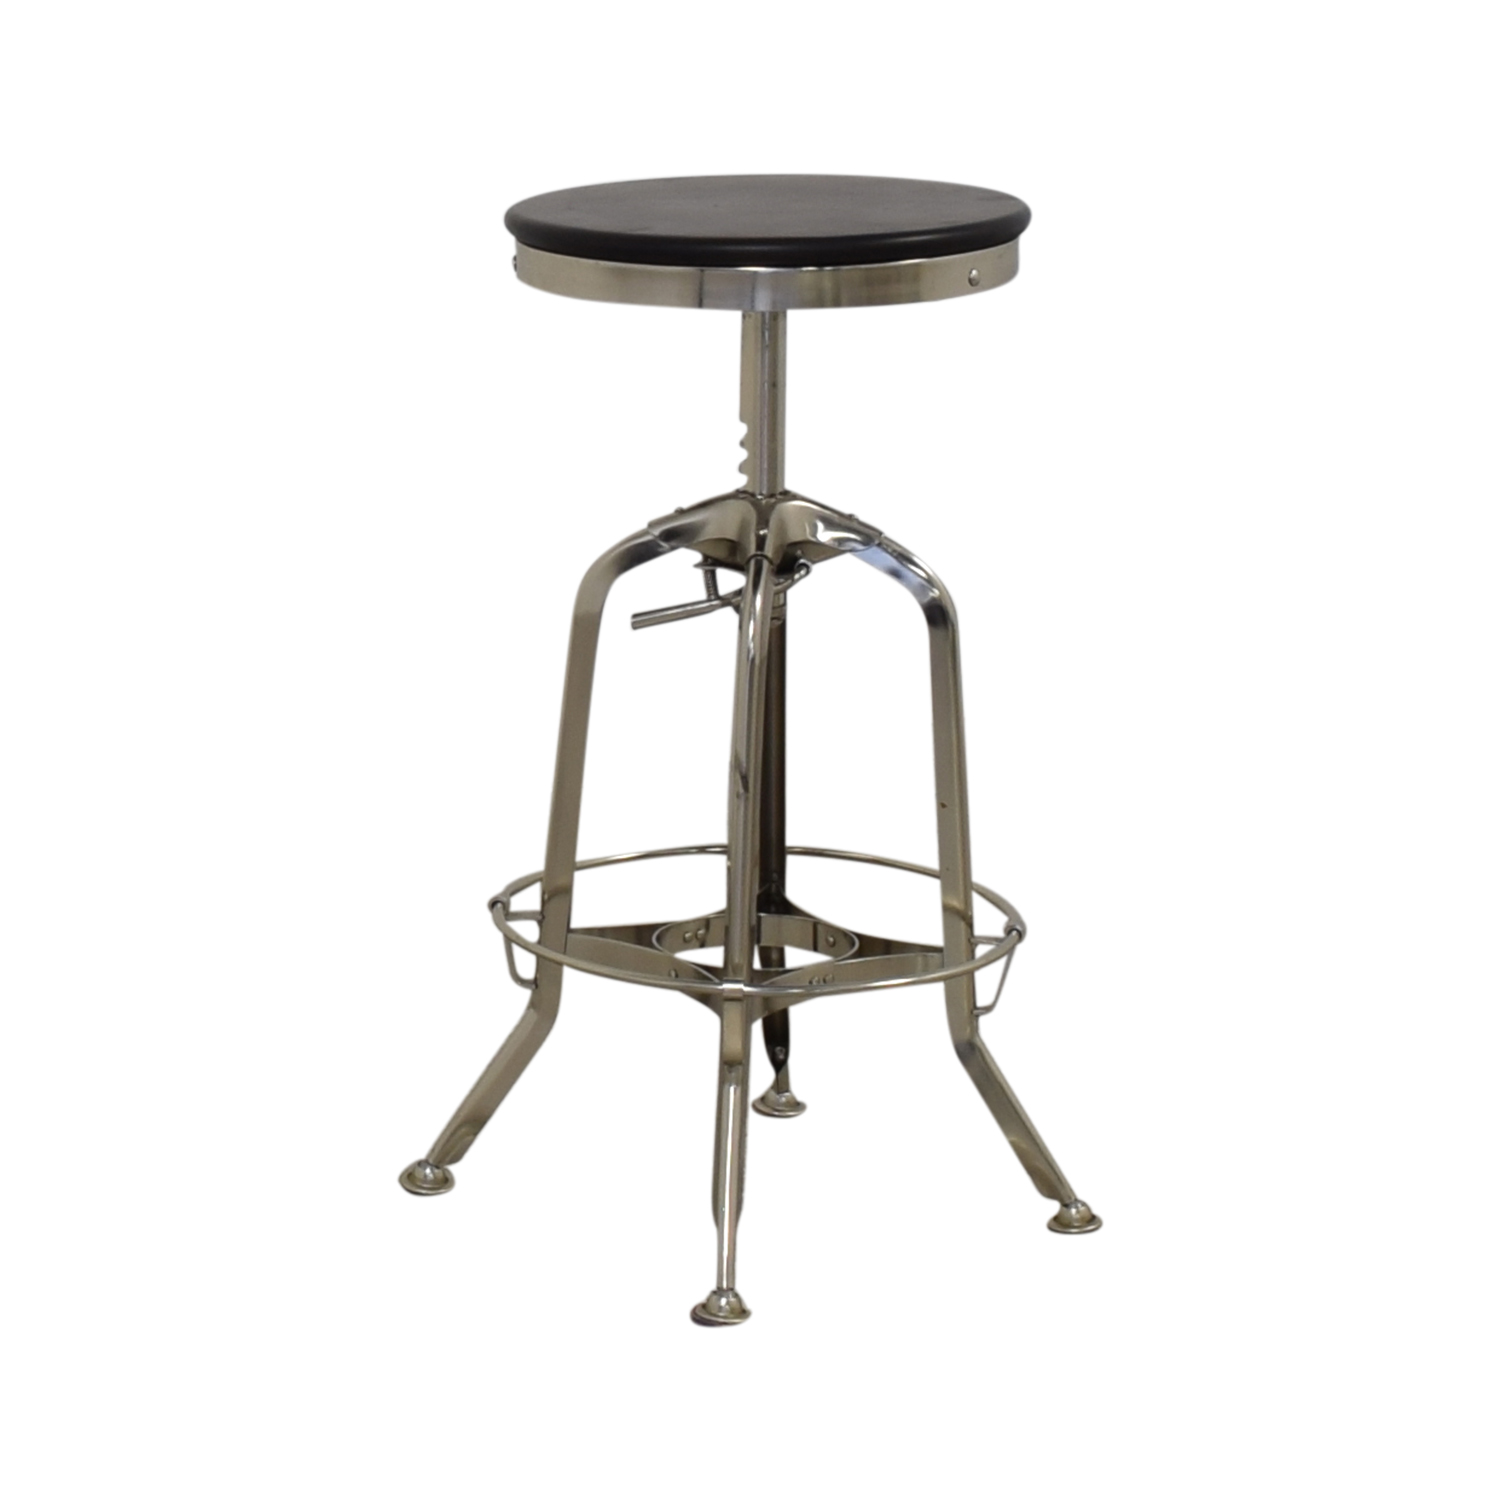 Restoration Hardware Restoration Hardware 1940s Vintage Toledo Bar Stool second hand